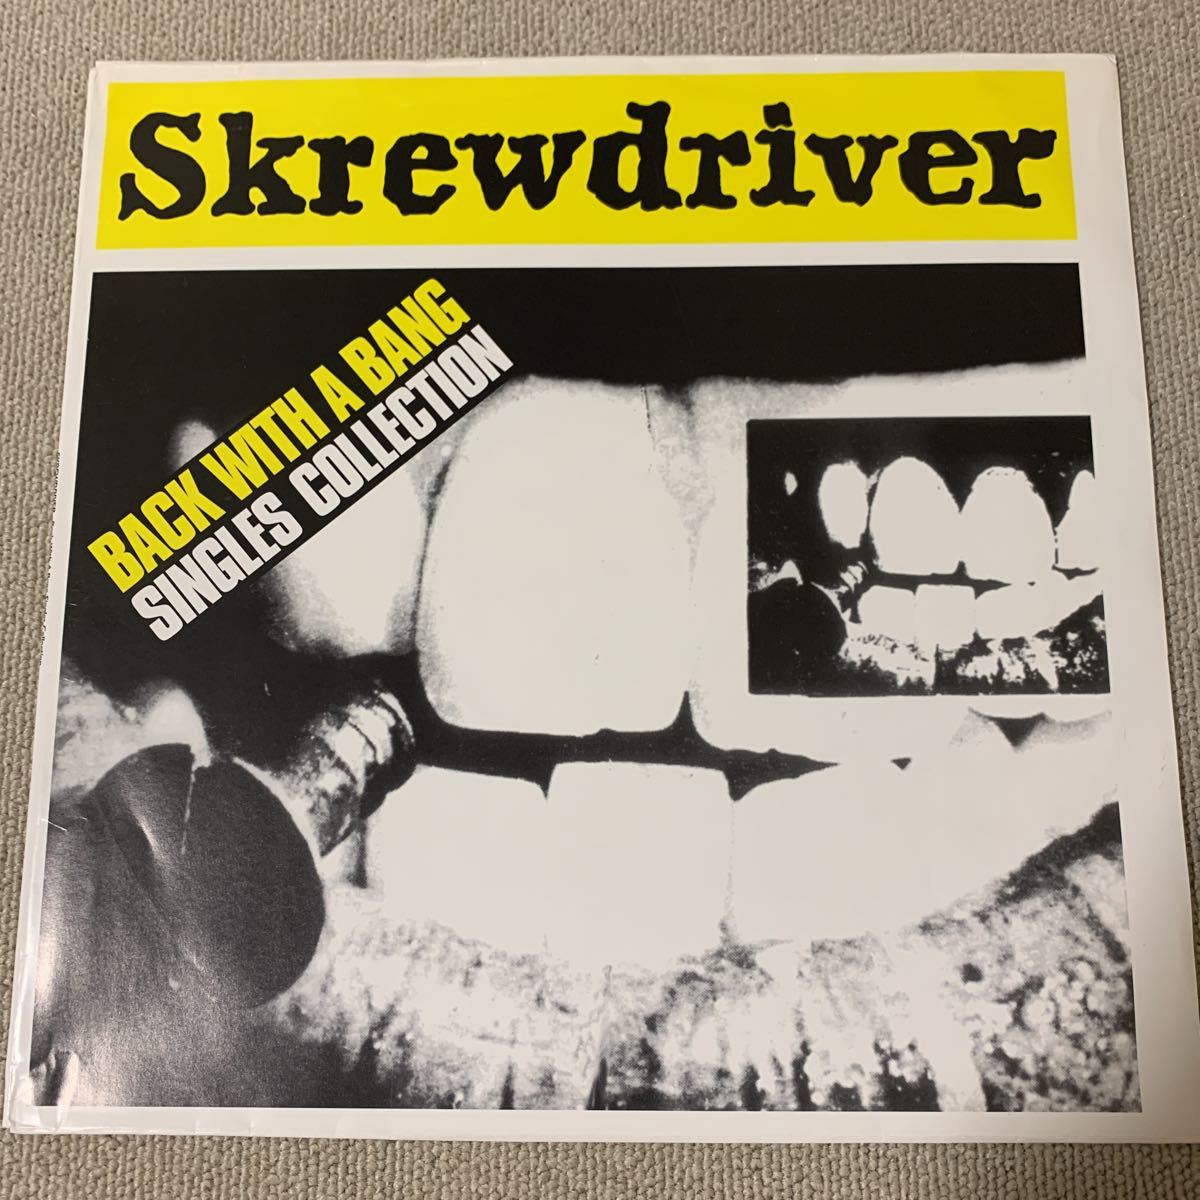 Skrewdriver back with a bang singles collection LP oi skins skinhead shuffle baws bad vultures determinations gruesome cobra lrf_画像1